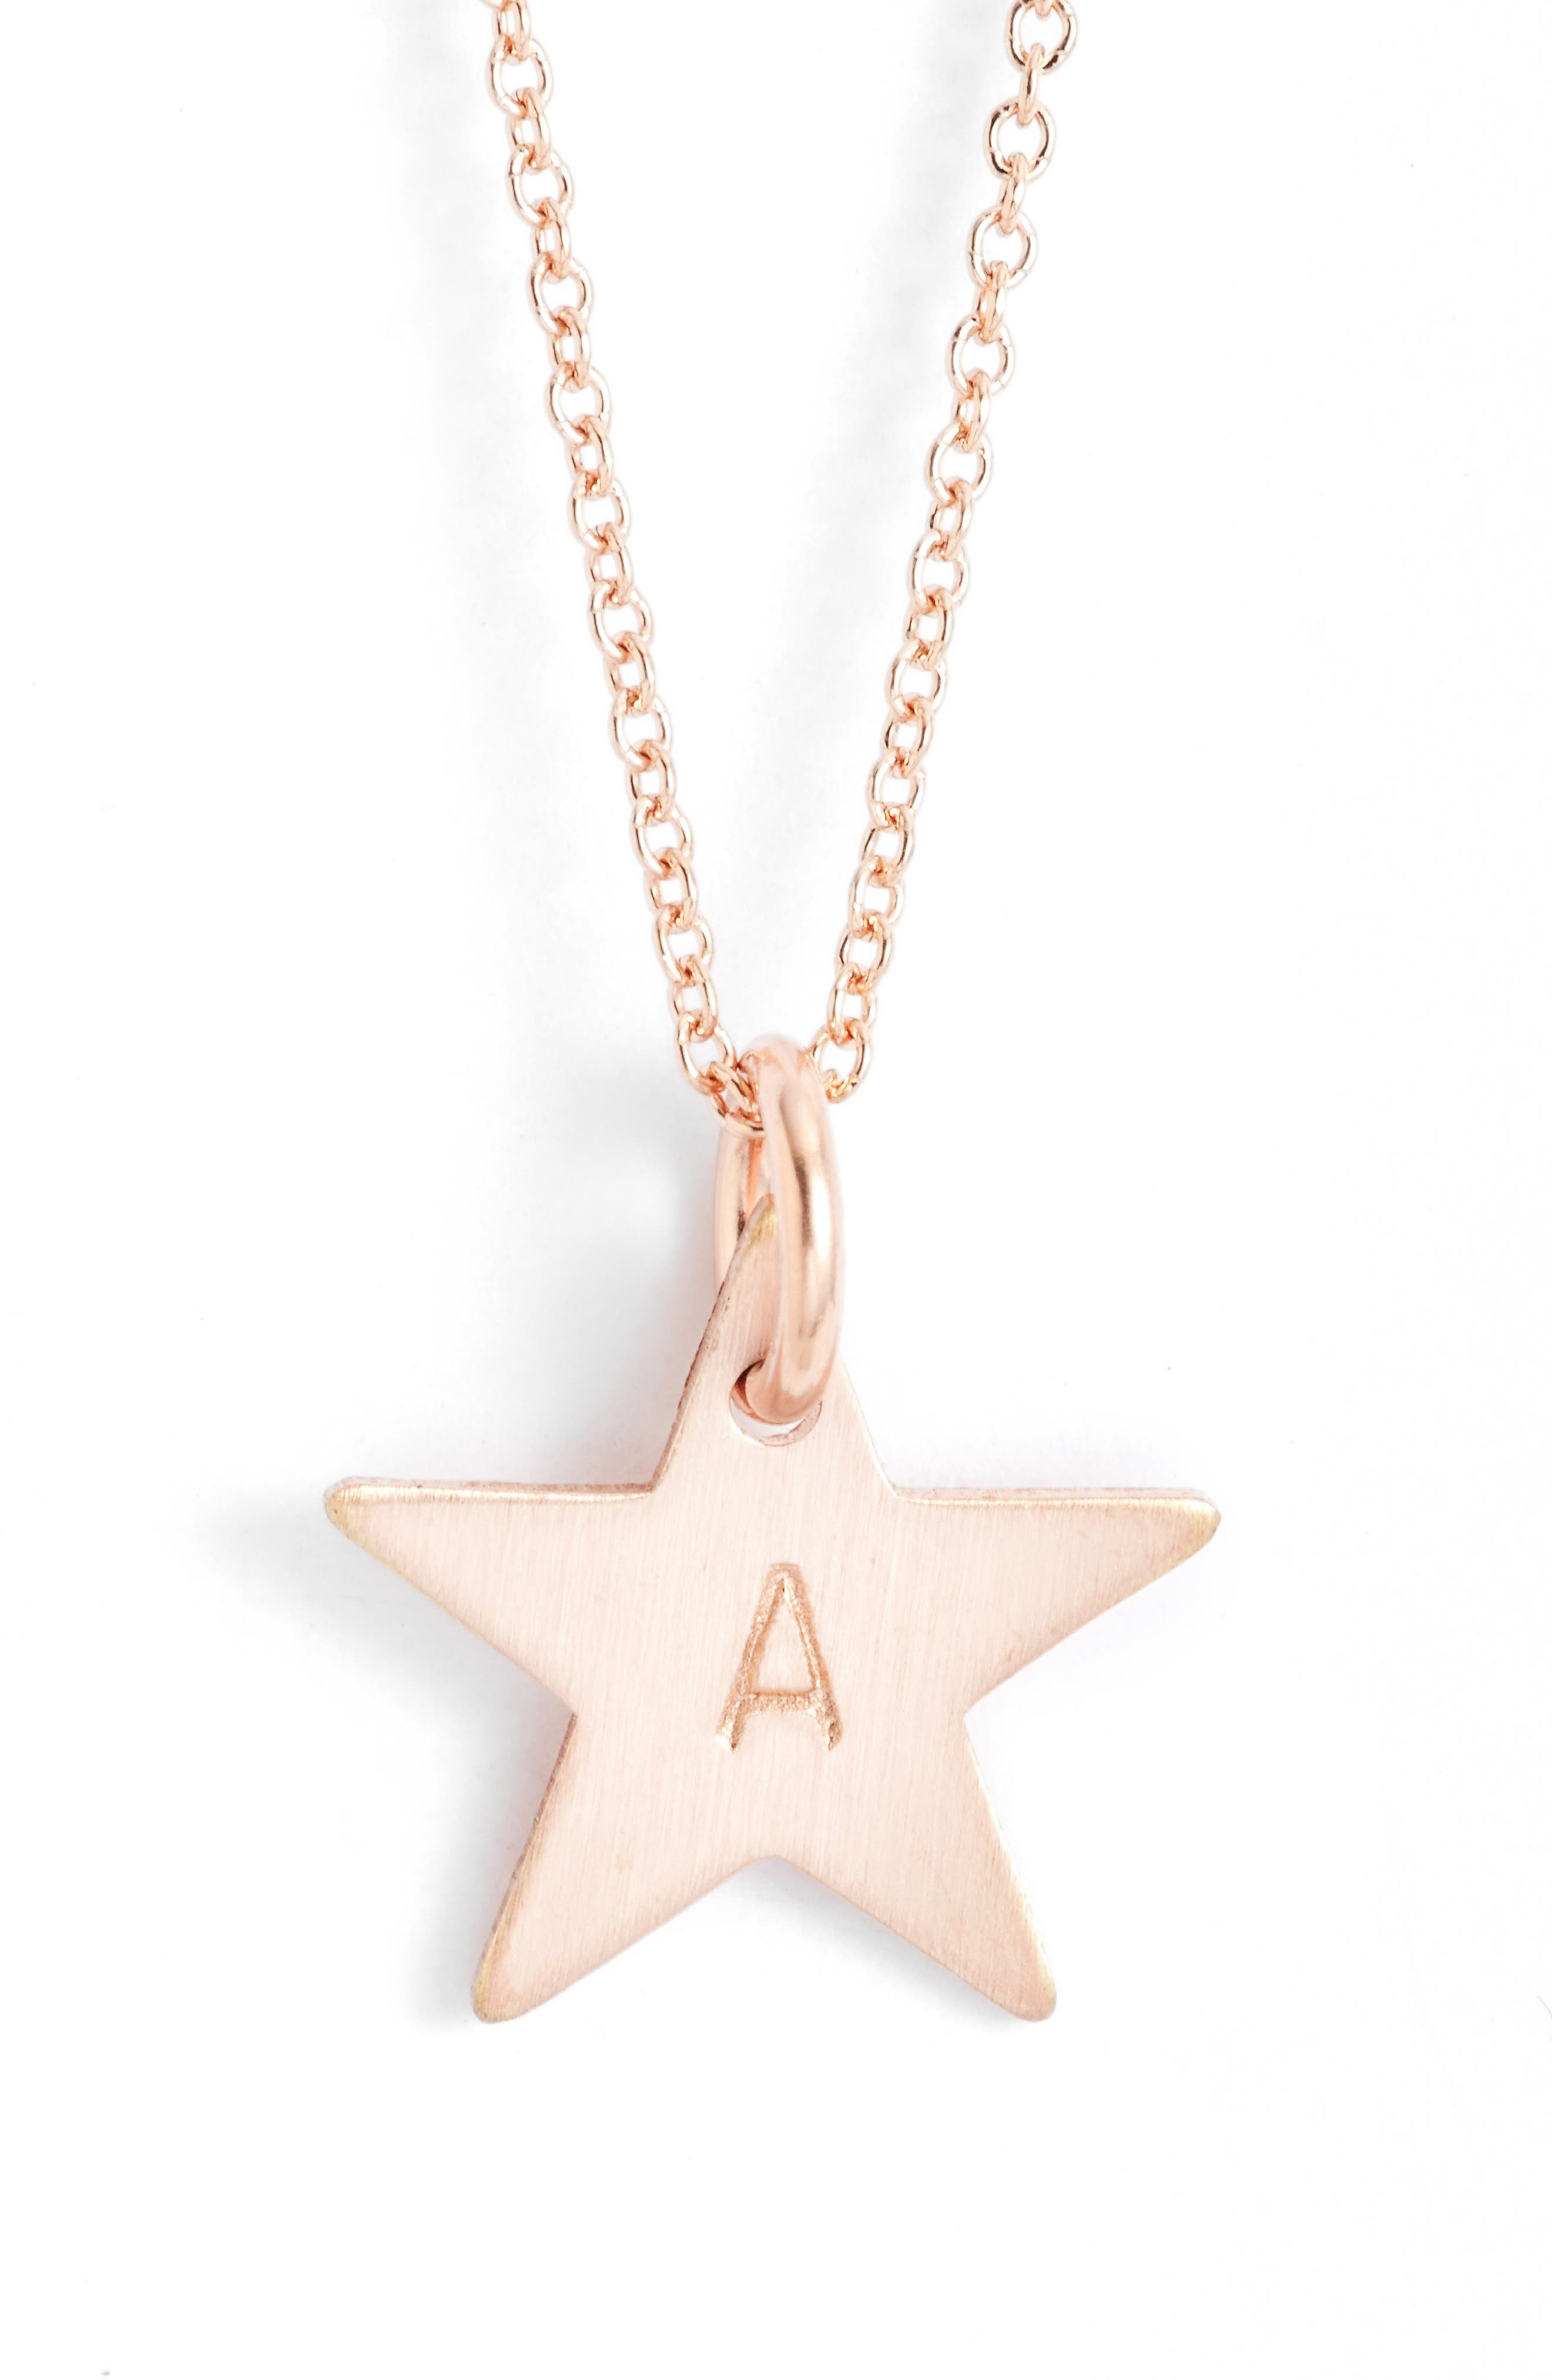 14k-Rose Gold Fill Initial Mini Star Pendant Necklace,                         Main,                         color, 710